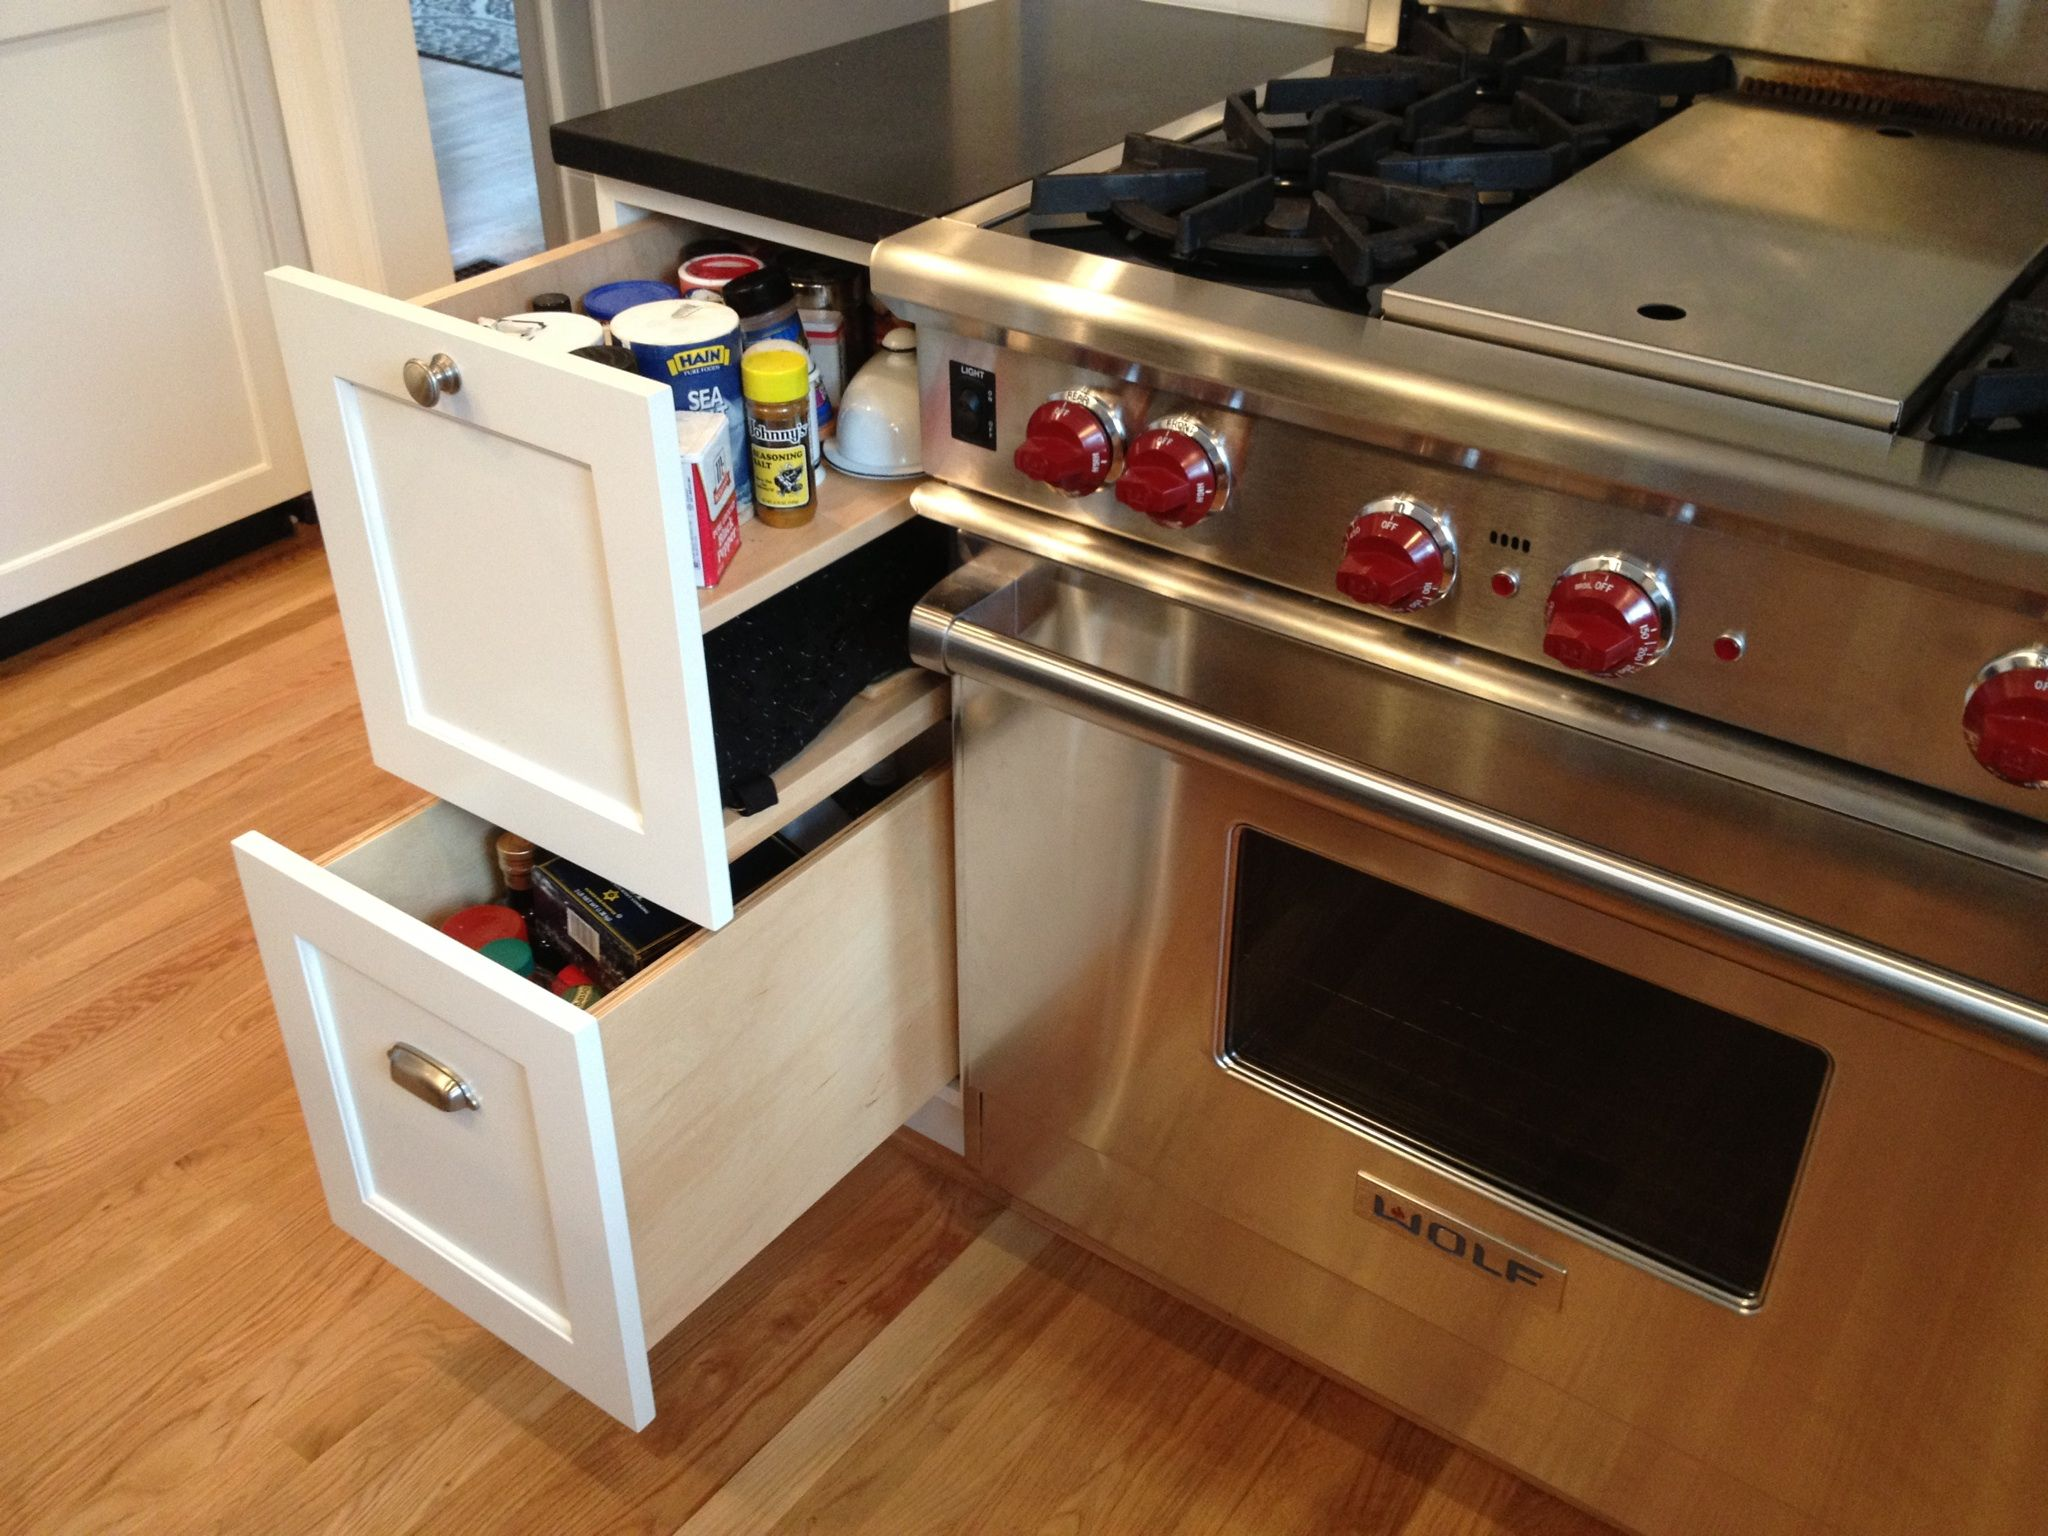 Contemporary range from wolf model 4 burners griddle - Pull Out Spice Rack Next To Wolf 4 Burner Gas Range With Griddle Drawer For